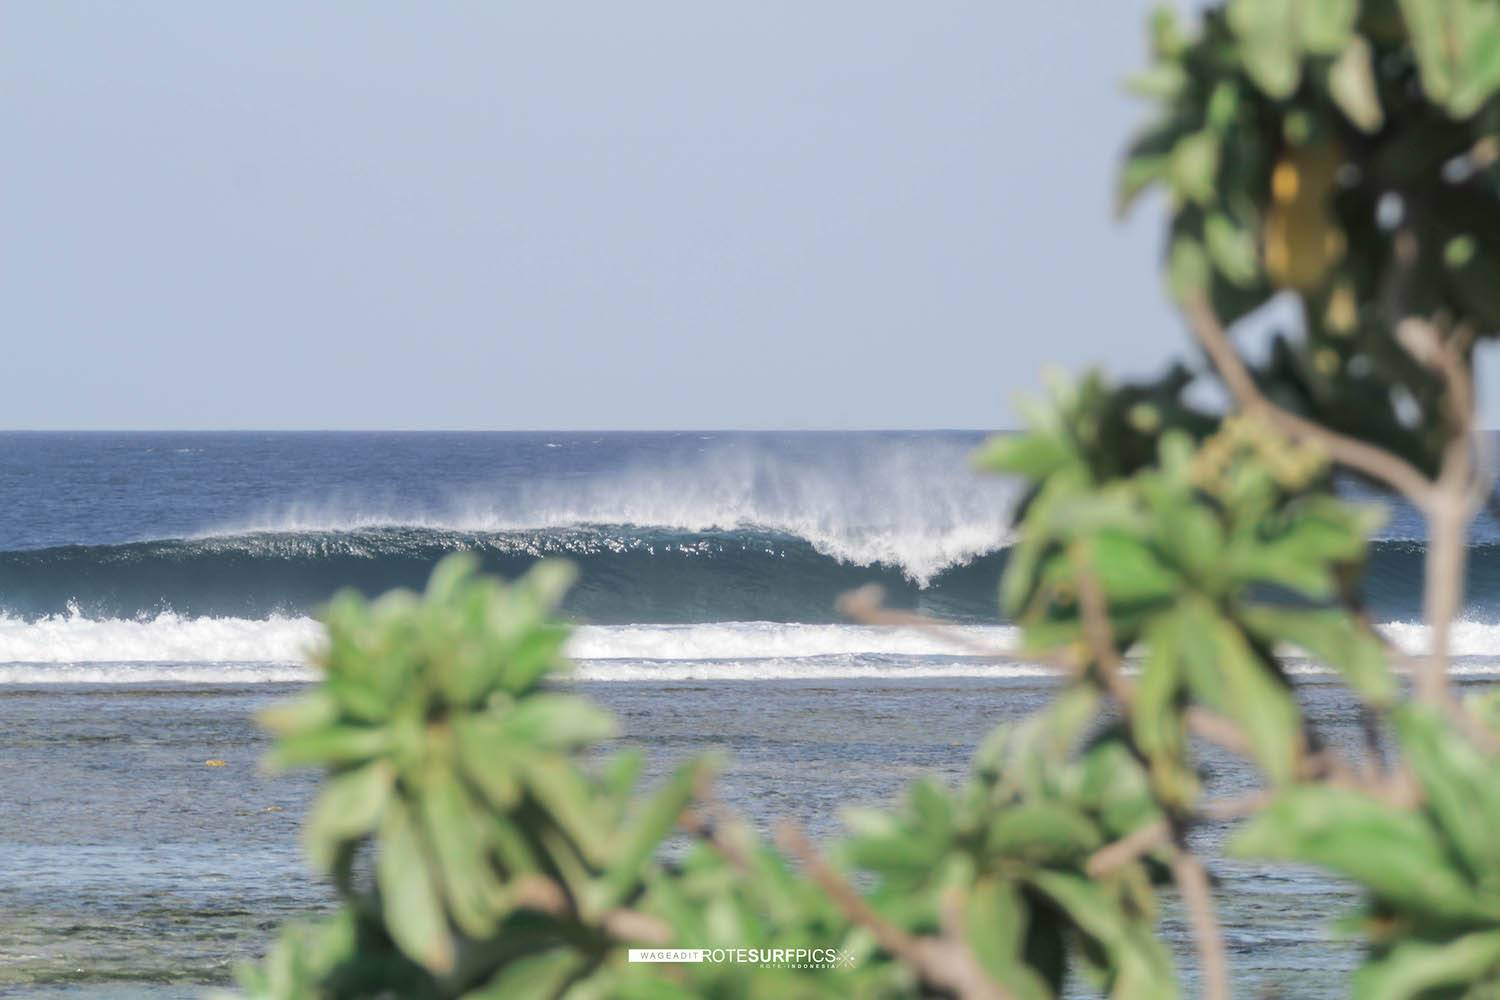 Surfing Rote